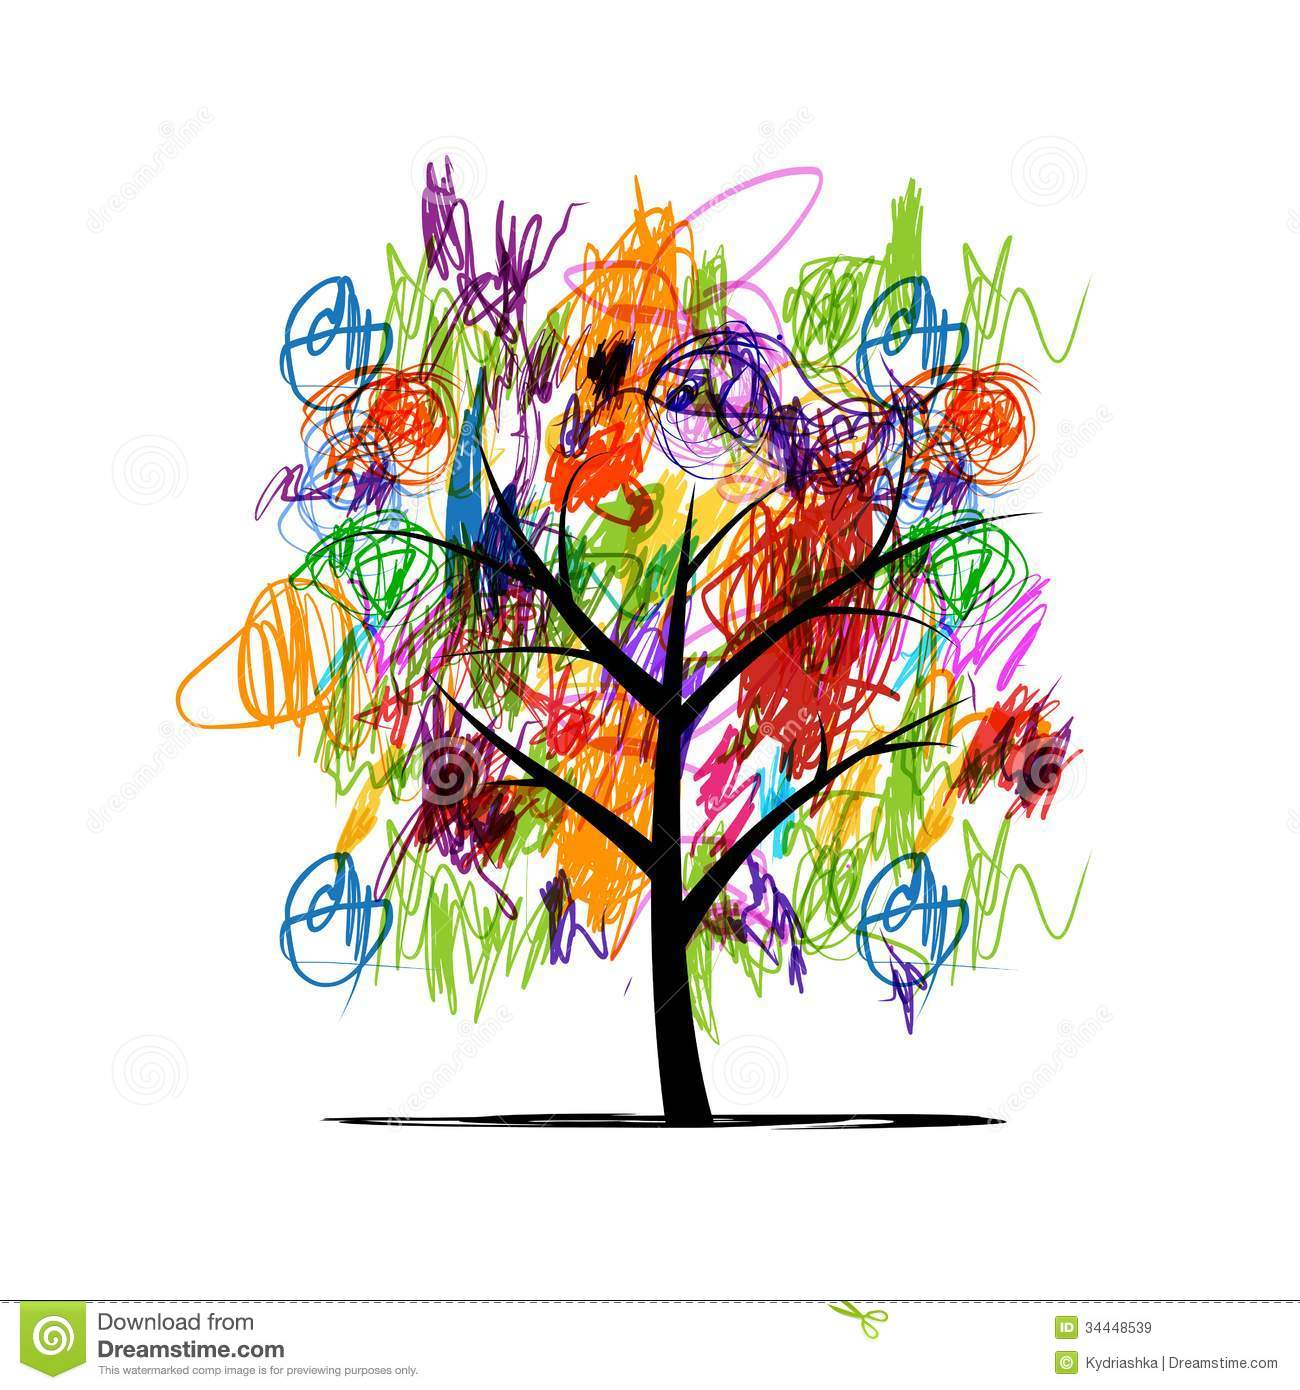 Royalty Free Stock Images Abstract Tree Children Paintings File Eps Format Image34448539 on file symbol thumbs up color